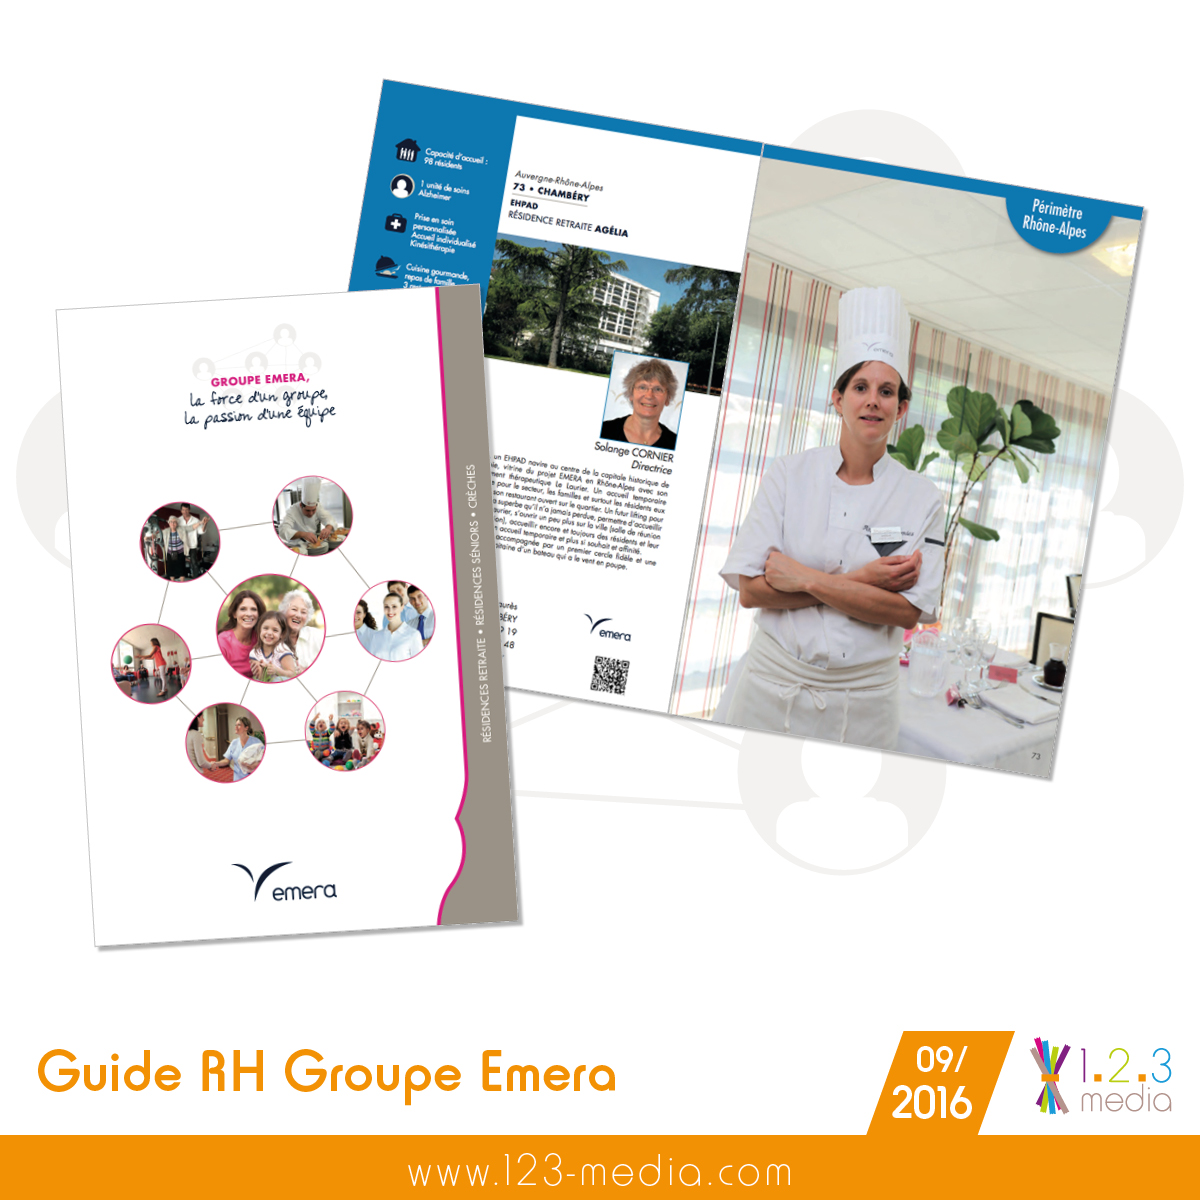 guide rh du groupe emera